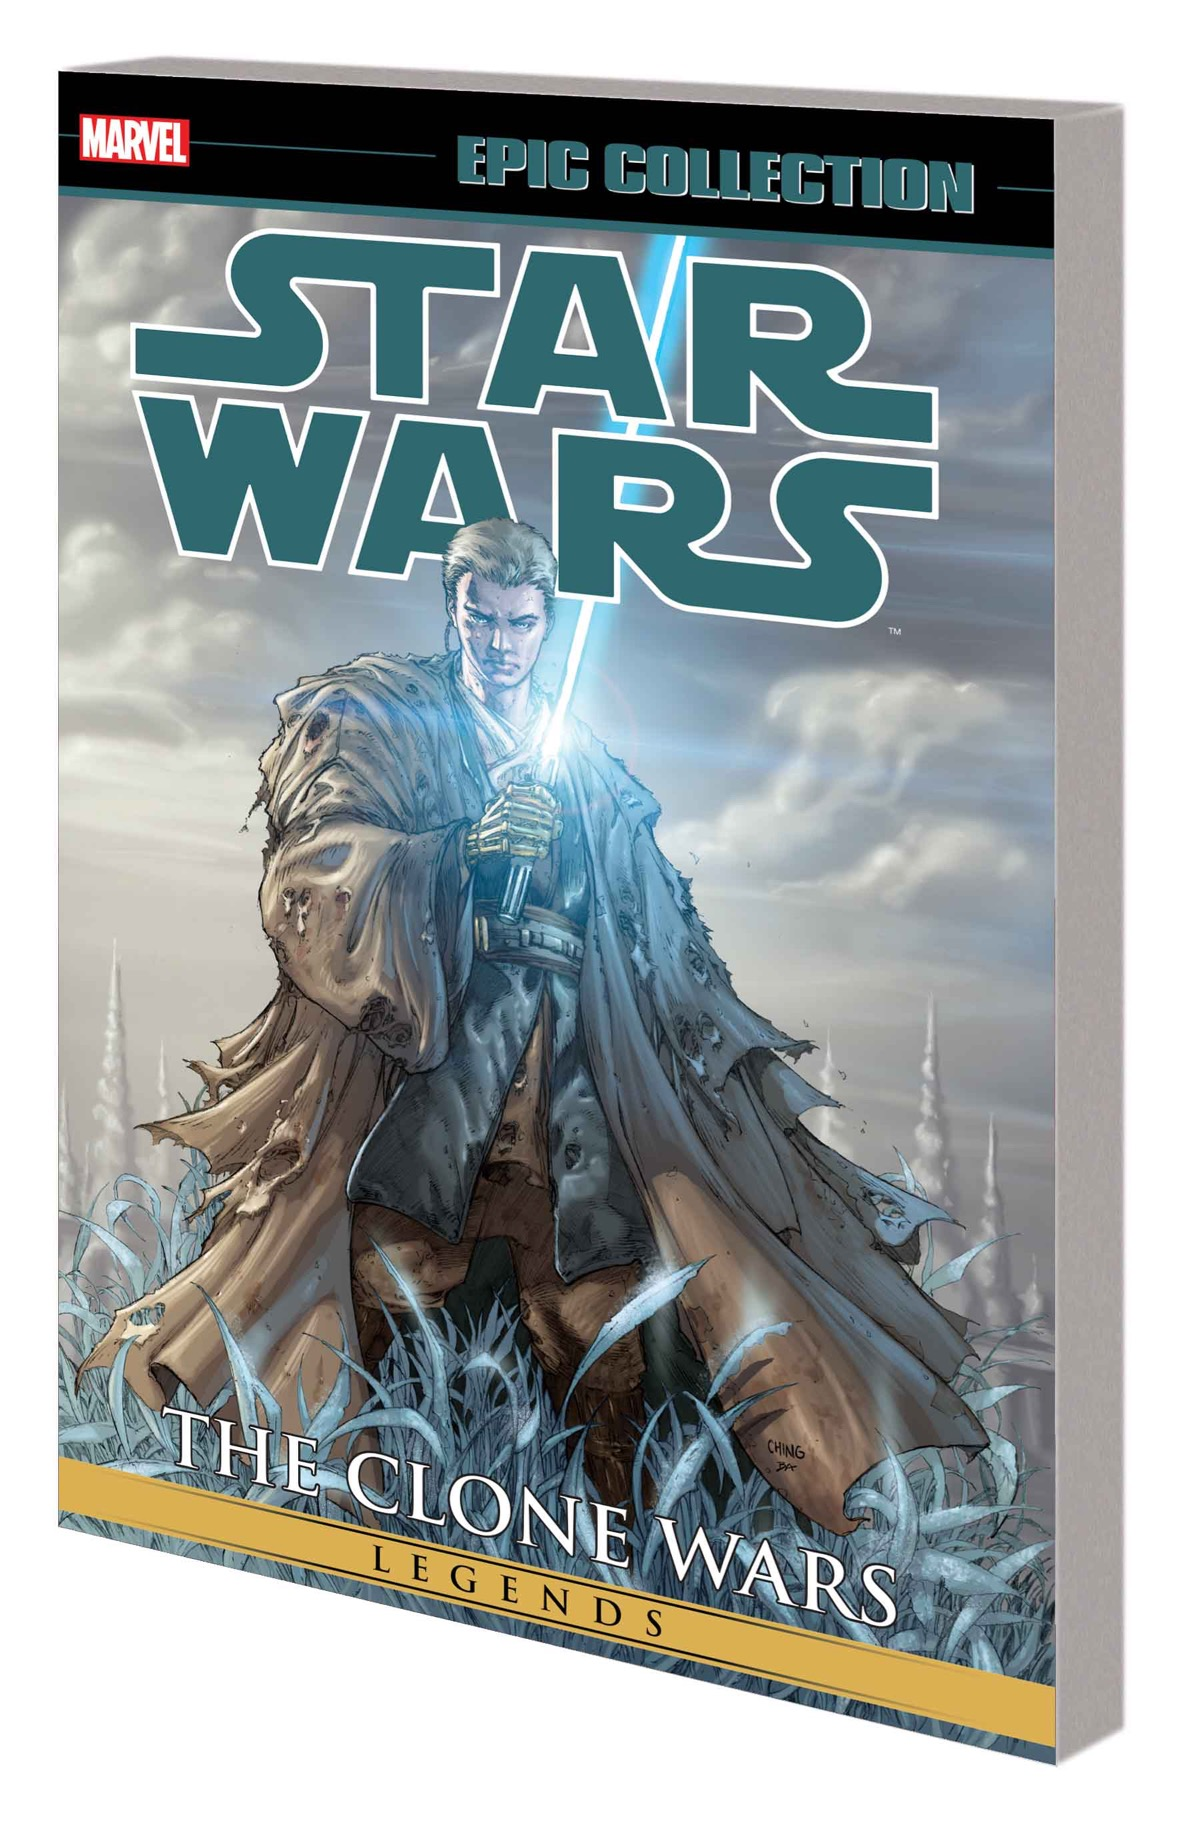 STAR WARS LEGENDS EPIC COLLECTION: THE CLONE WARS VOL. 2 TPB